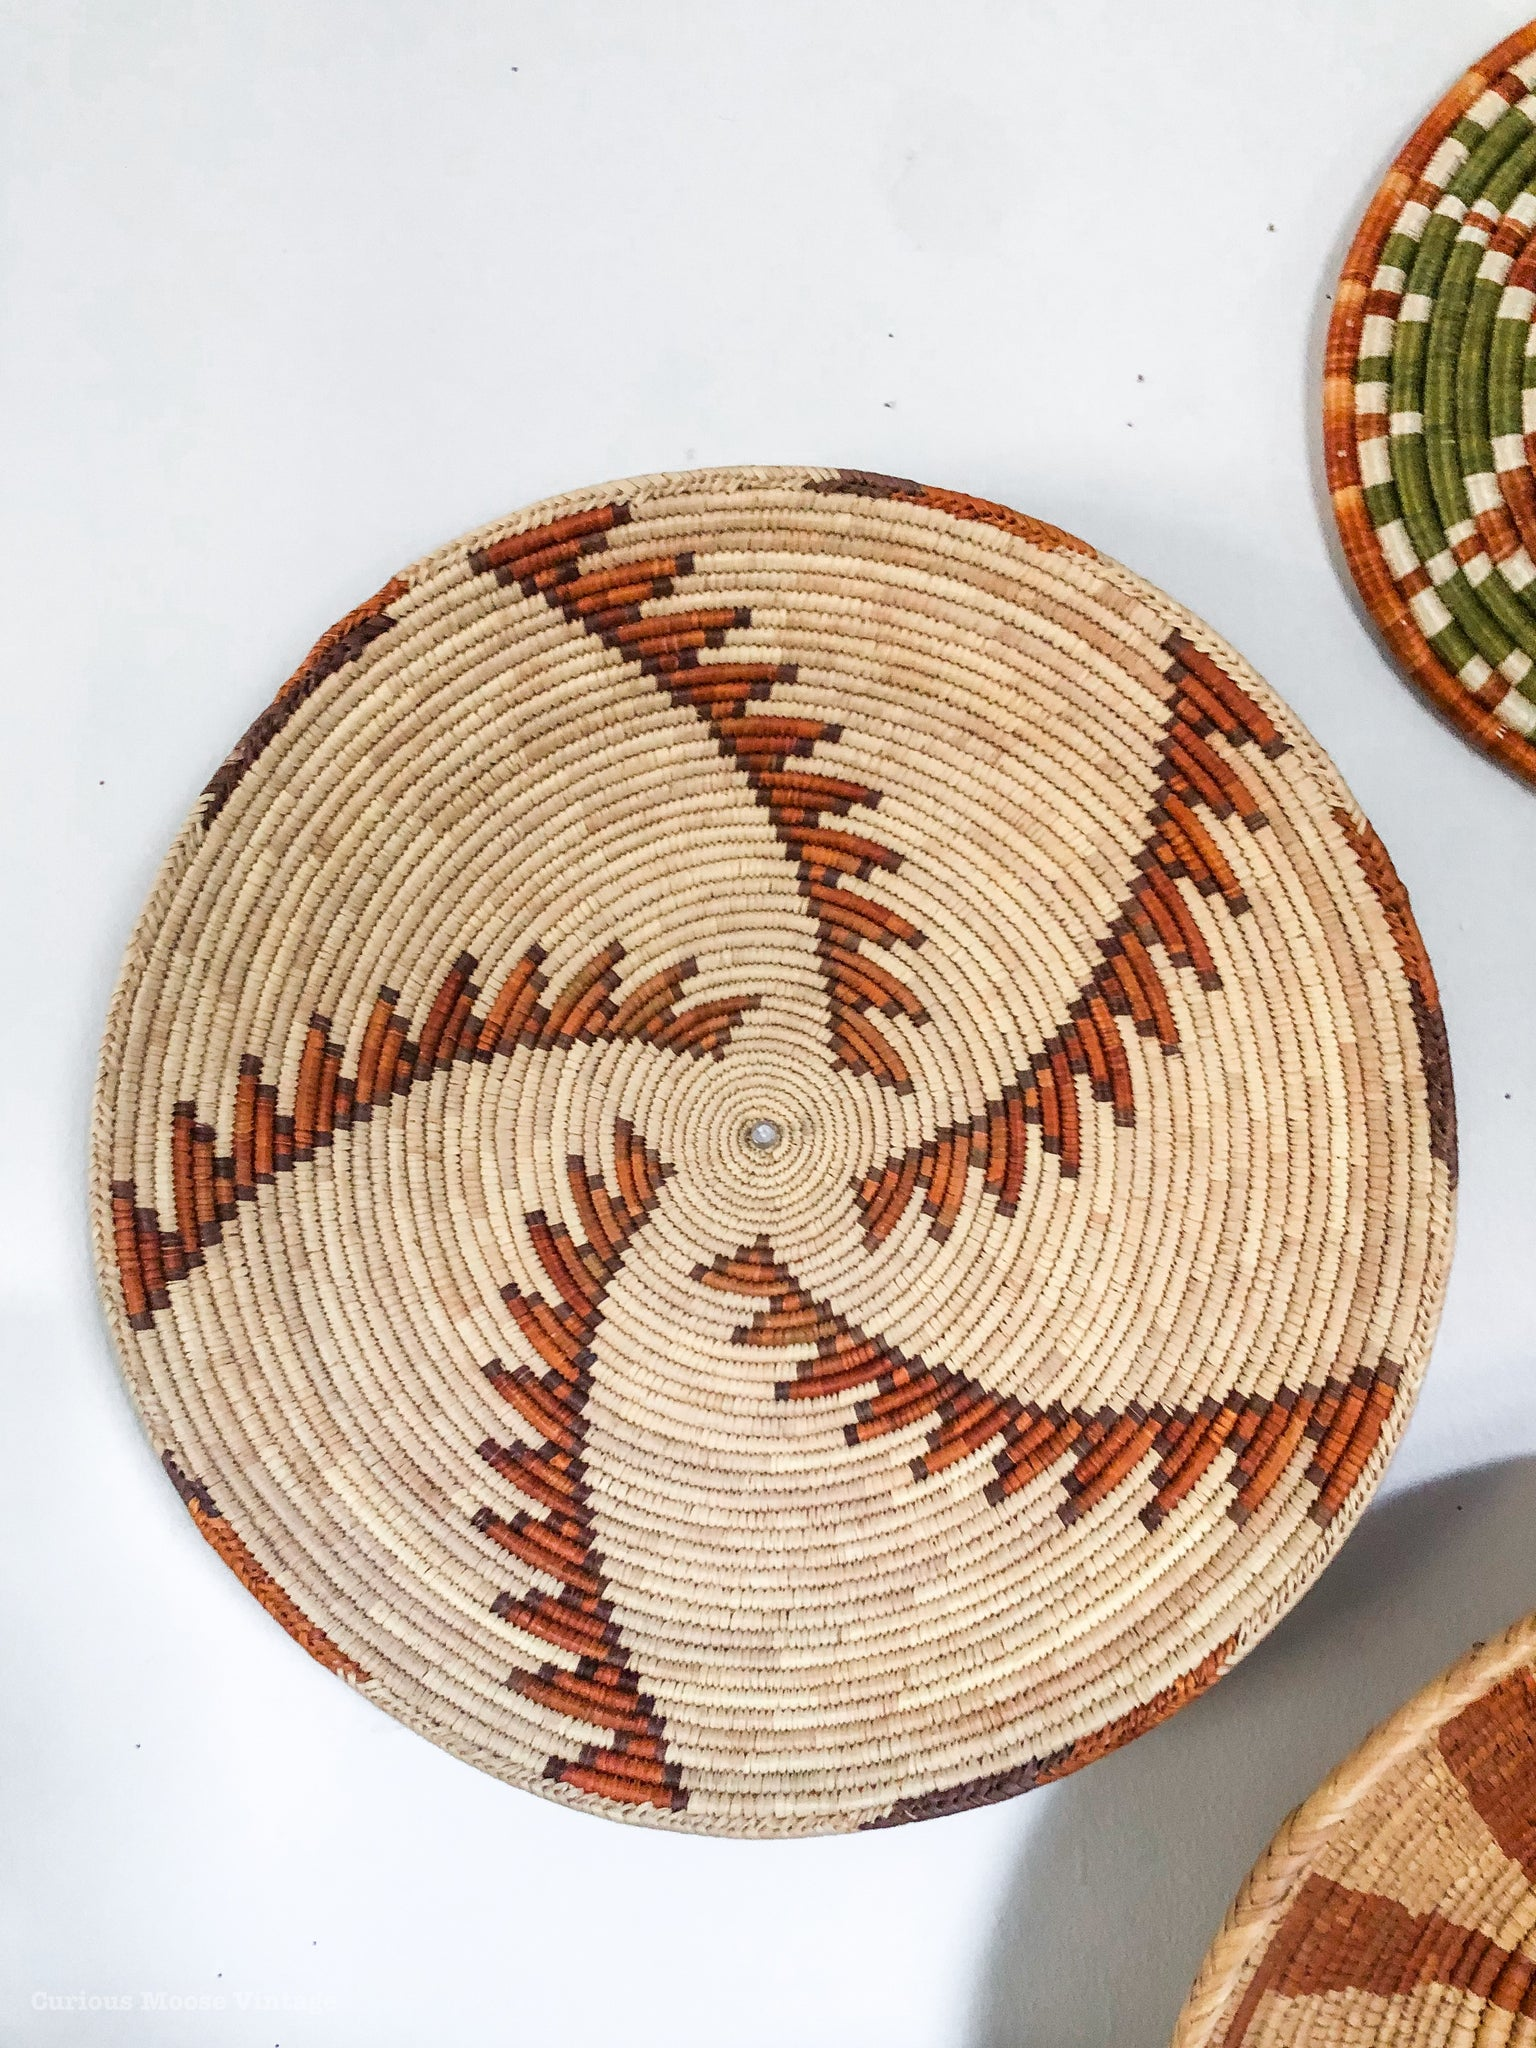 Curated African Wall Baskets